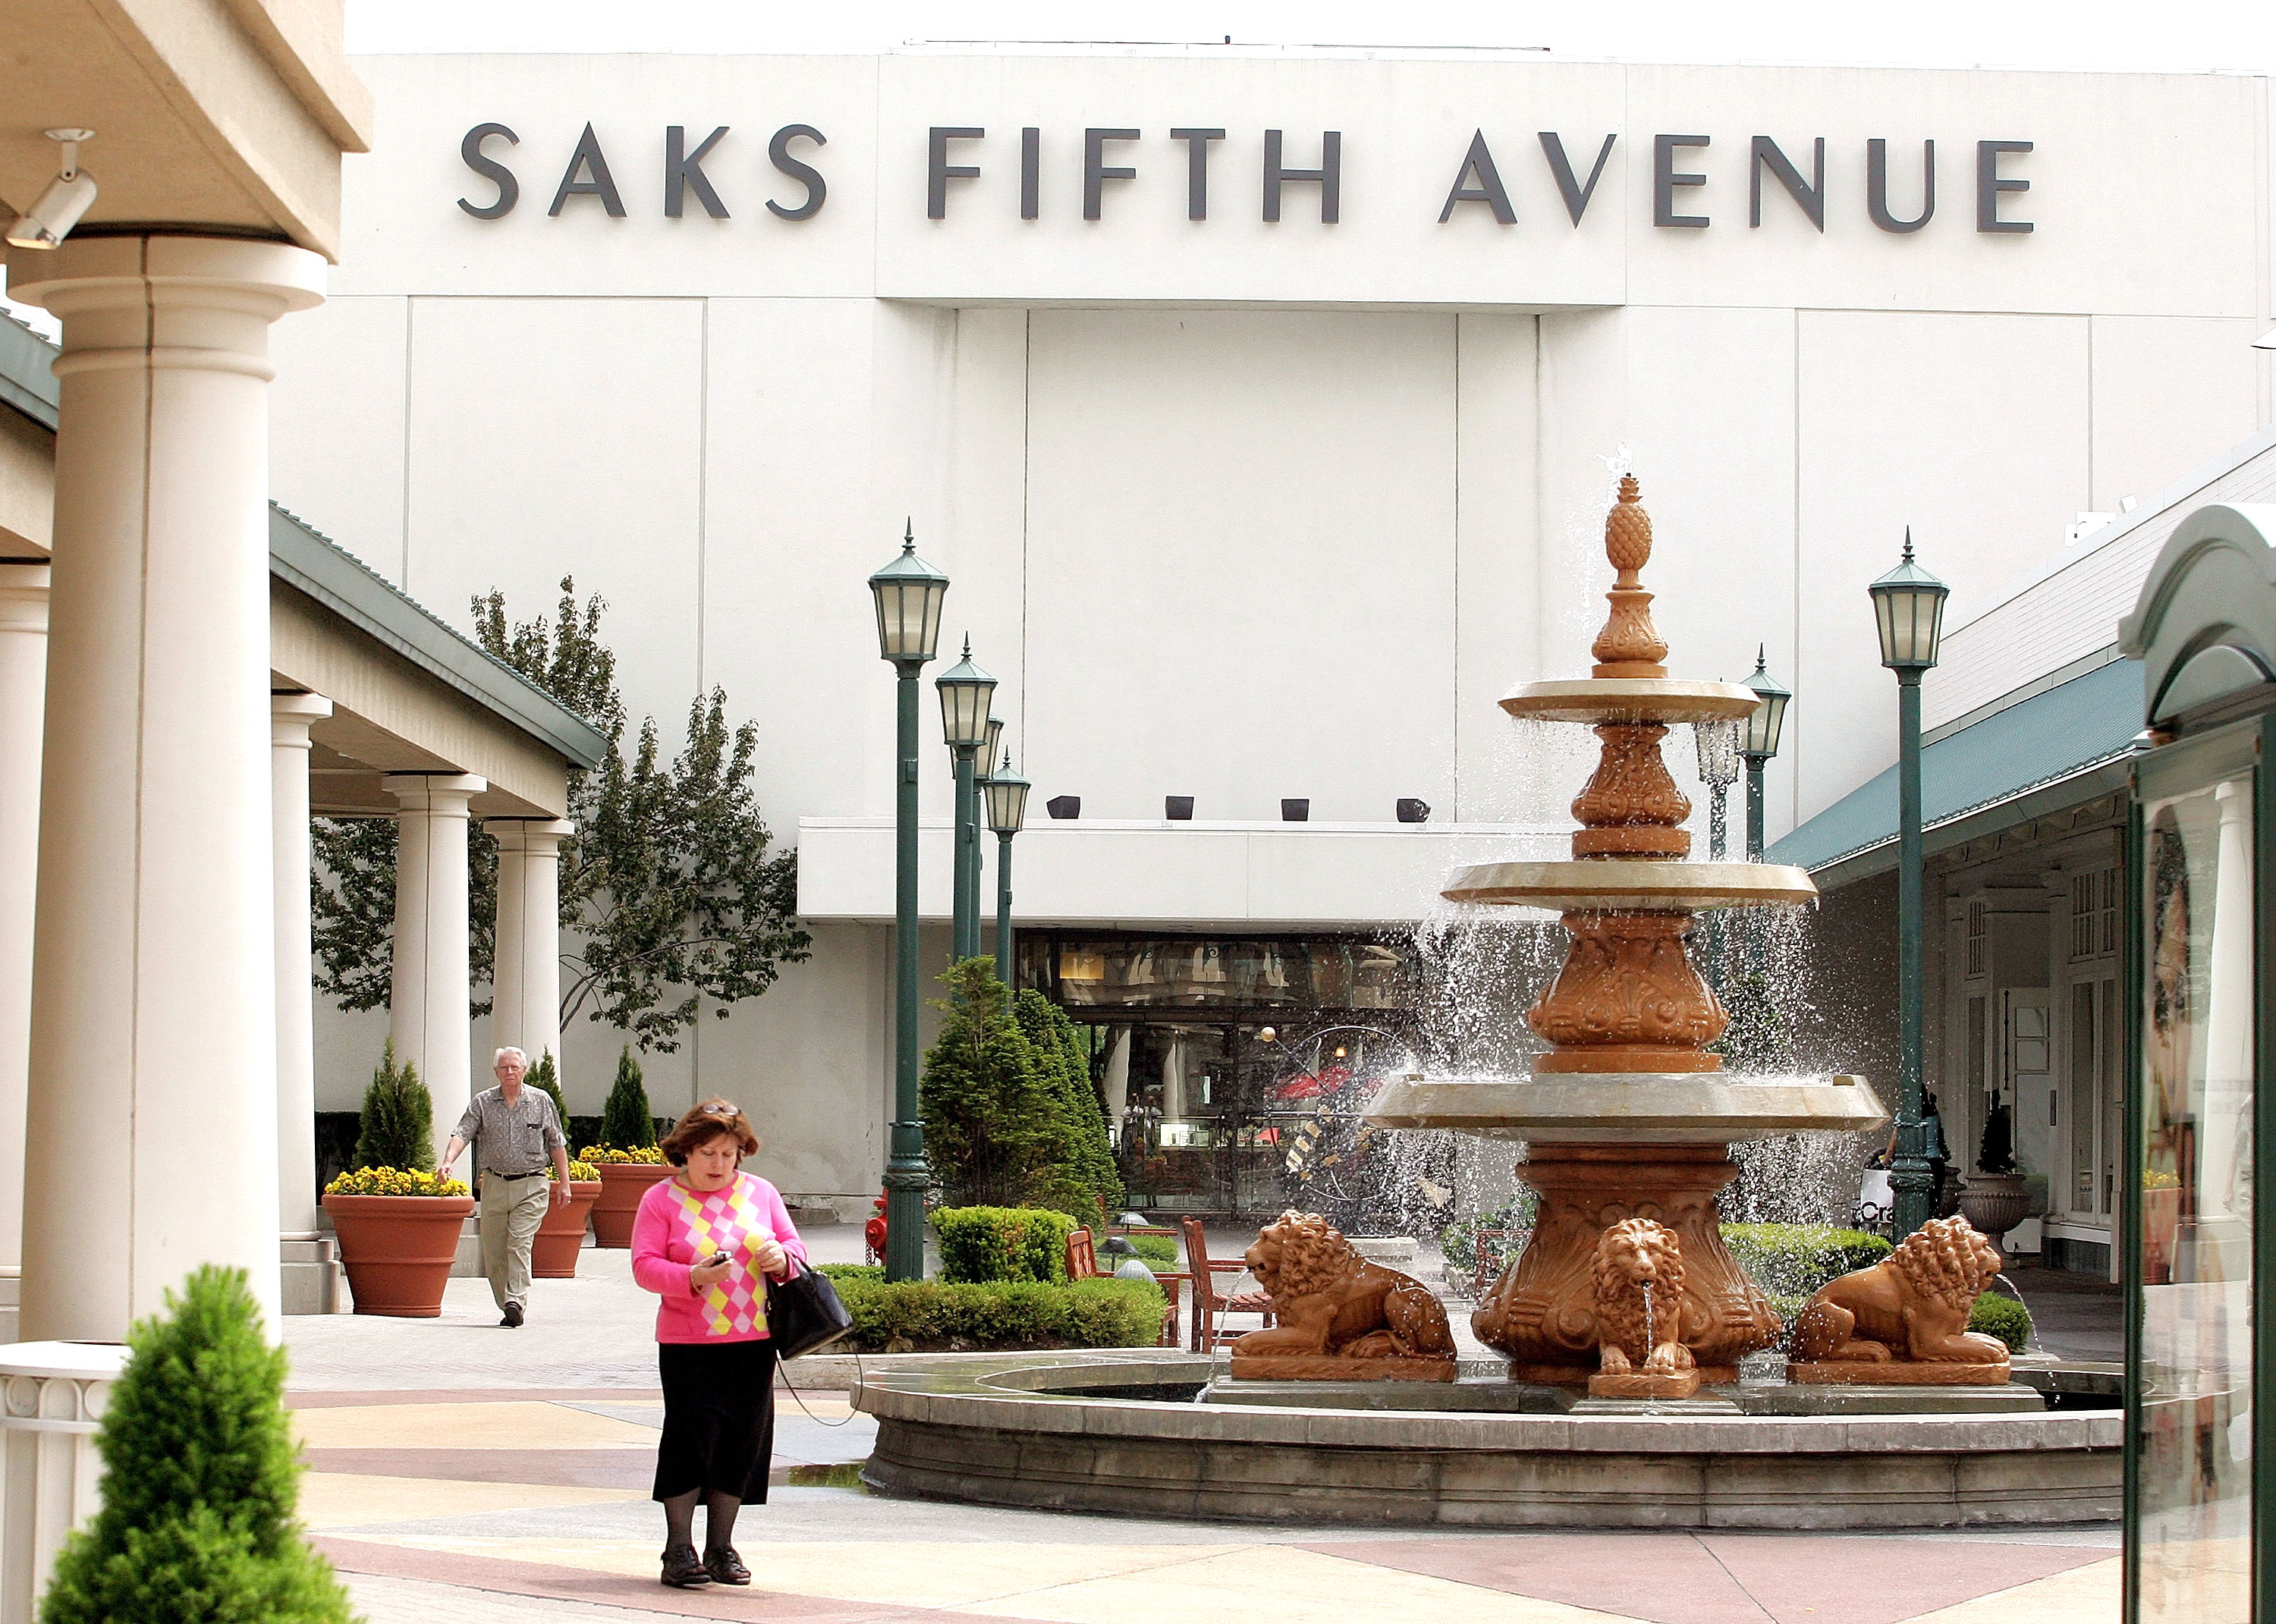 Signage for the Saks Fifth Avenue